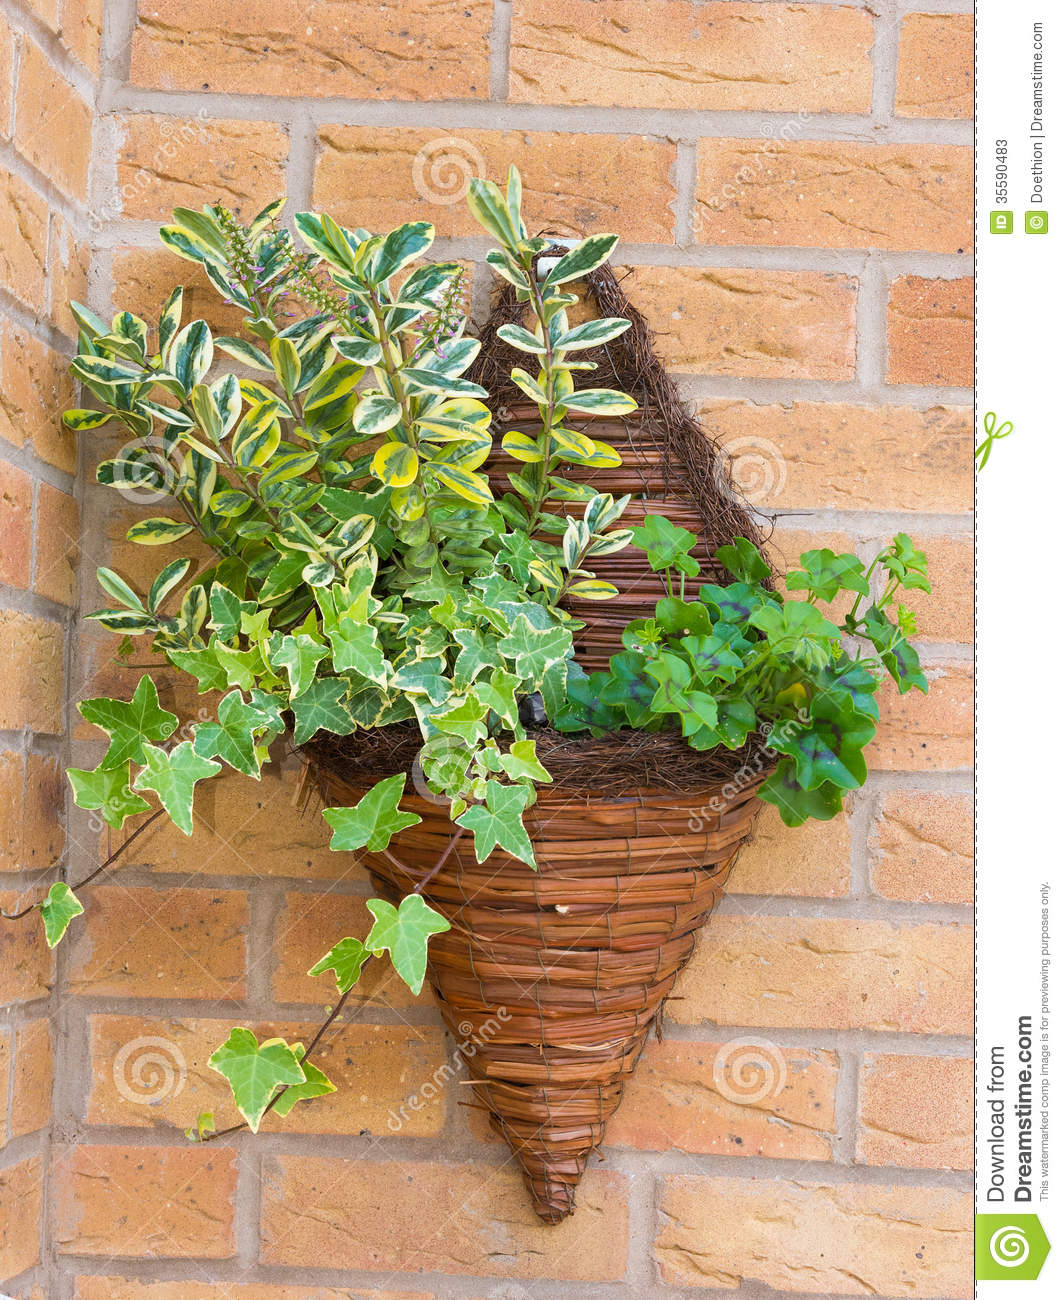 Wall Mounted Wicker Basket Containing Plants